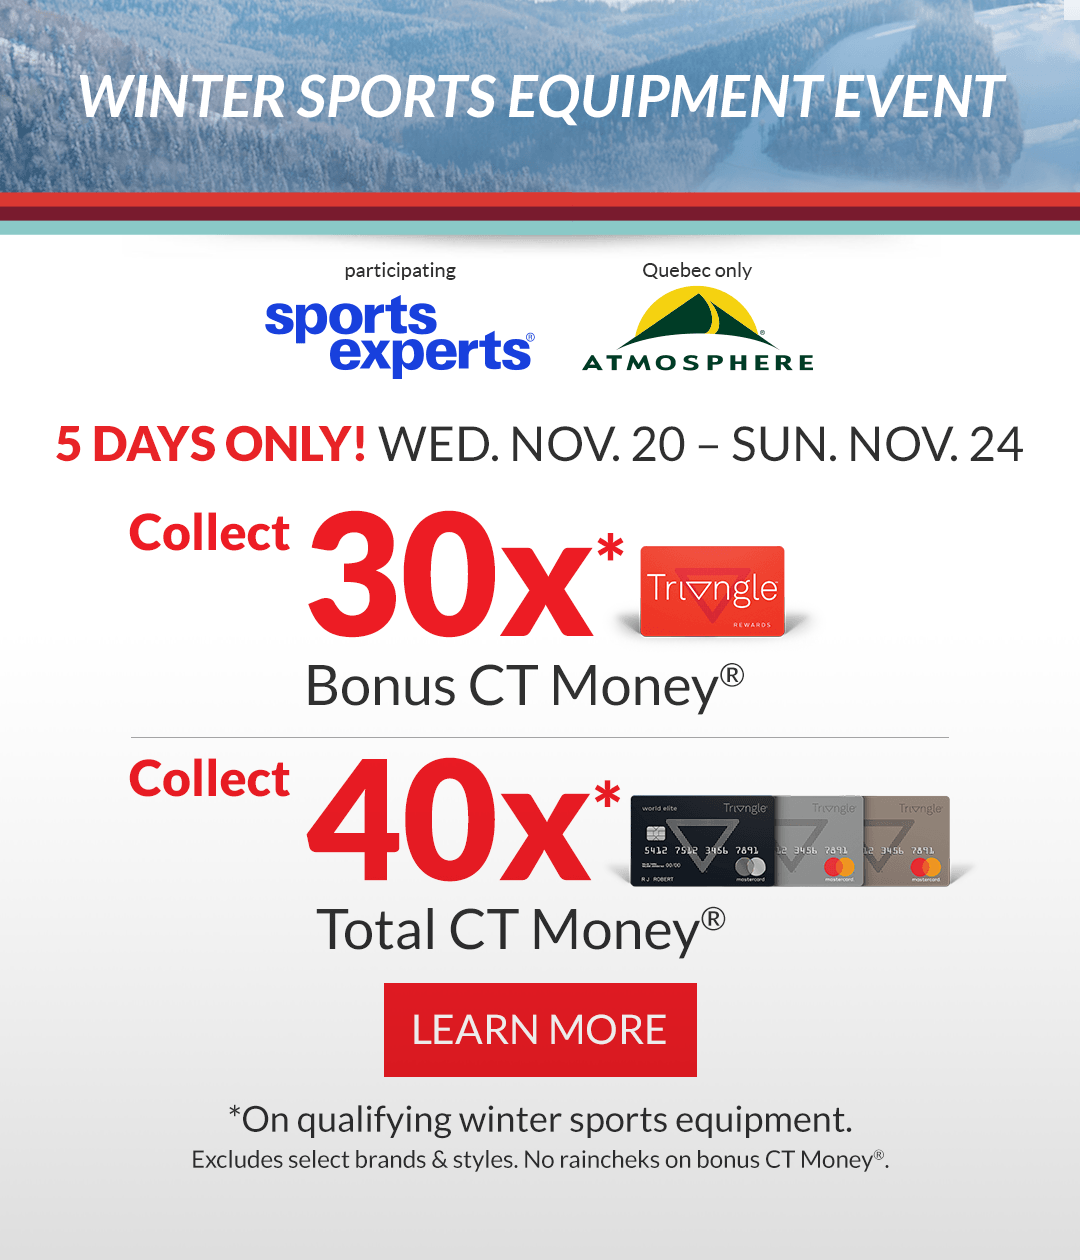 Bonus Day WINTER SPORTS EQUIPMENT EVENT FOR 5 DAYS ONLY